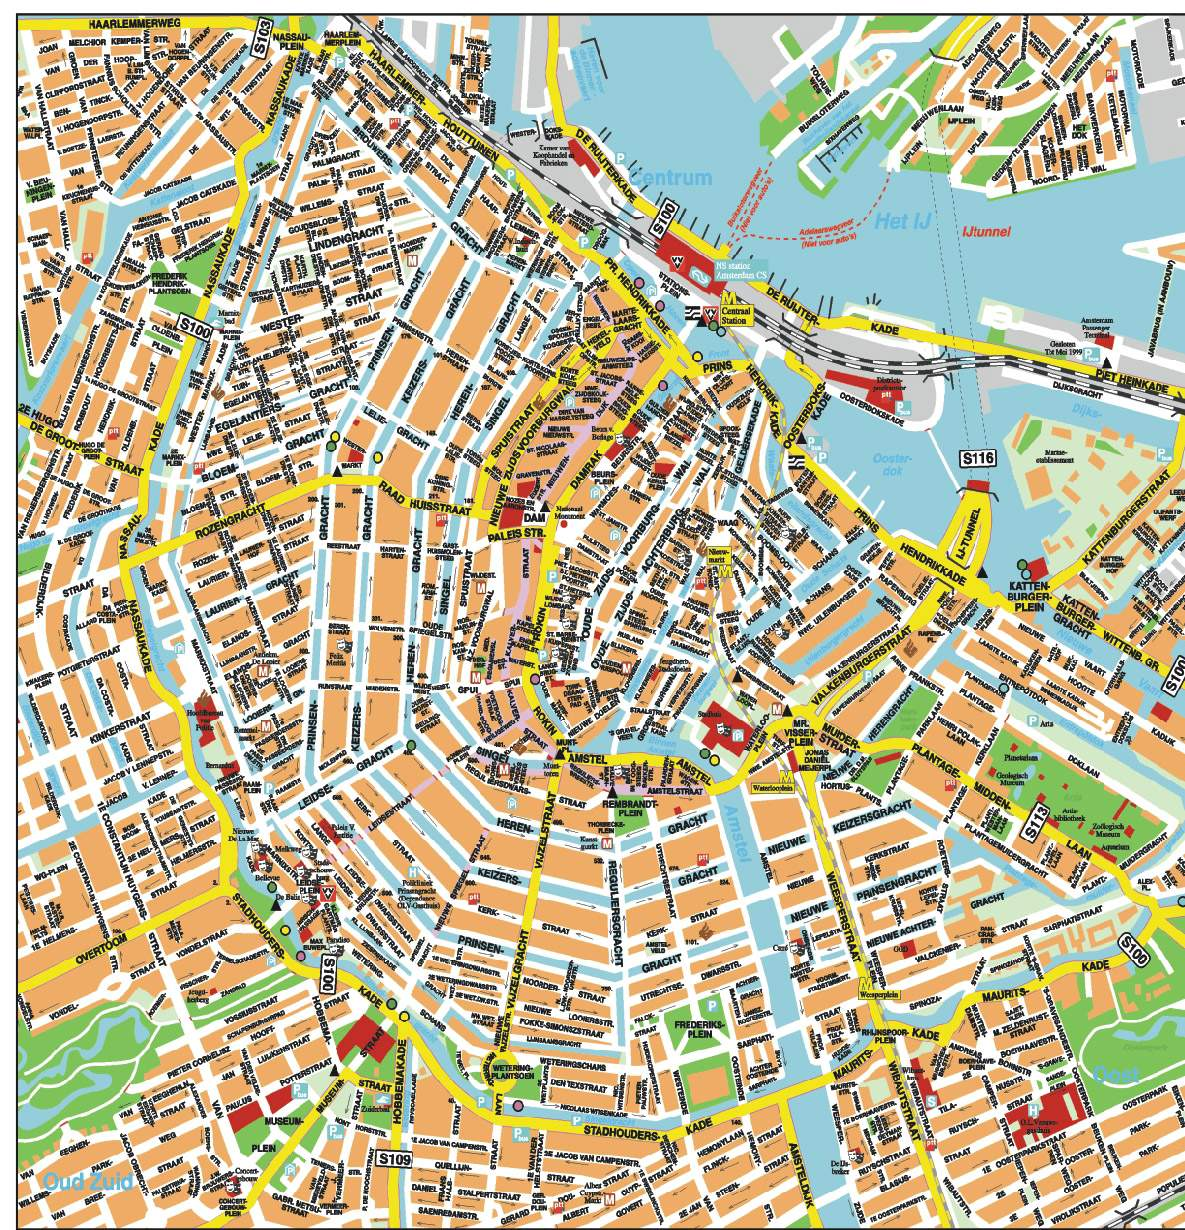 wwwMappinet Maps of cities Amsterdam